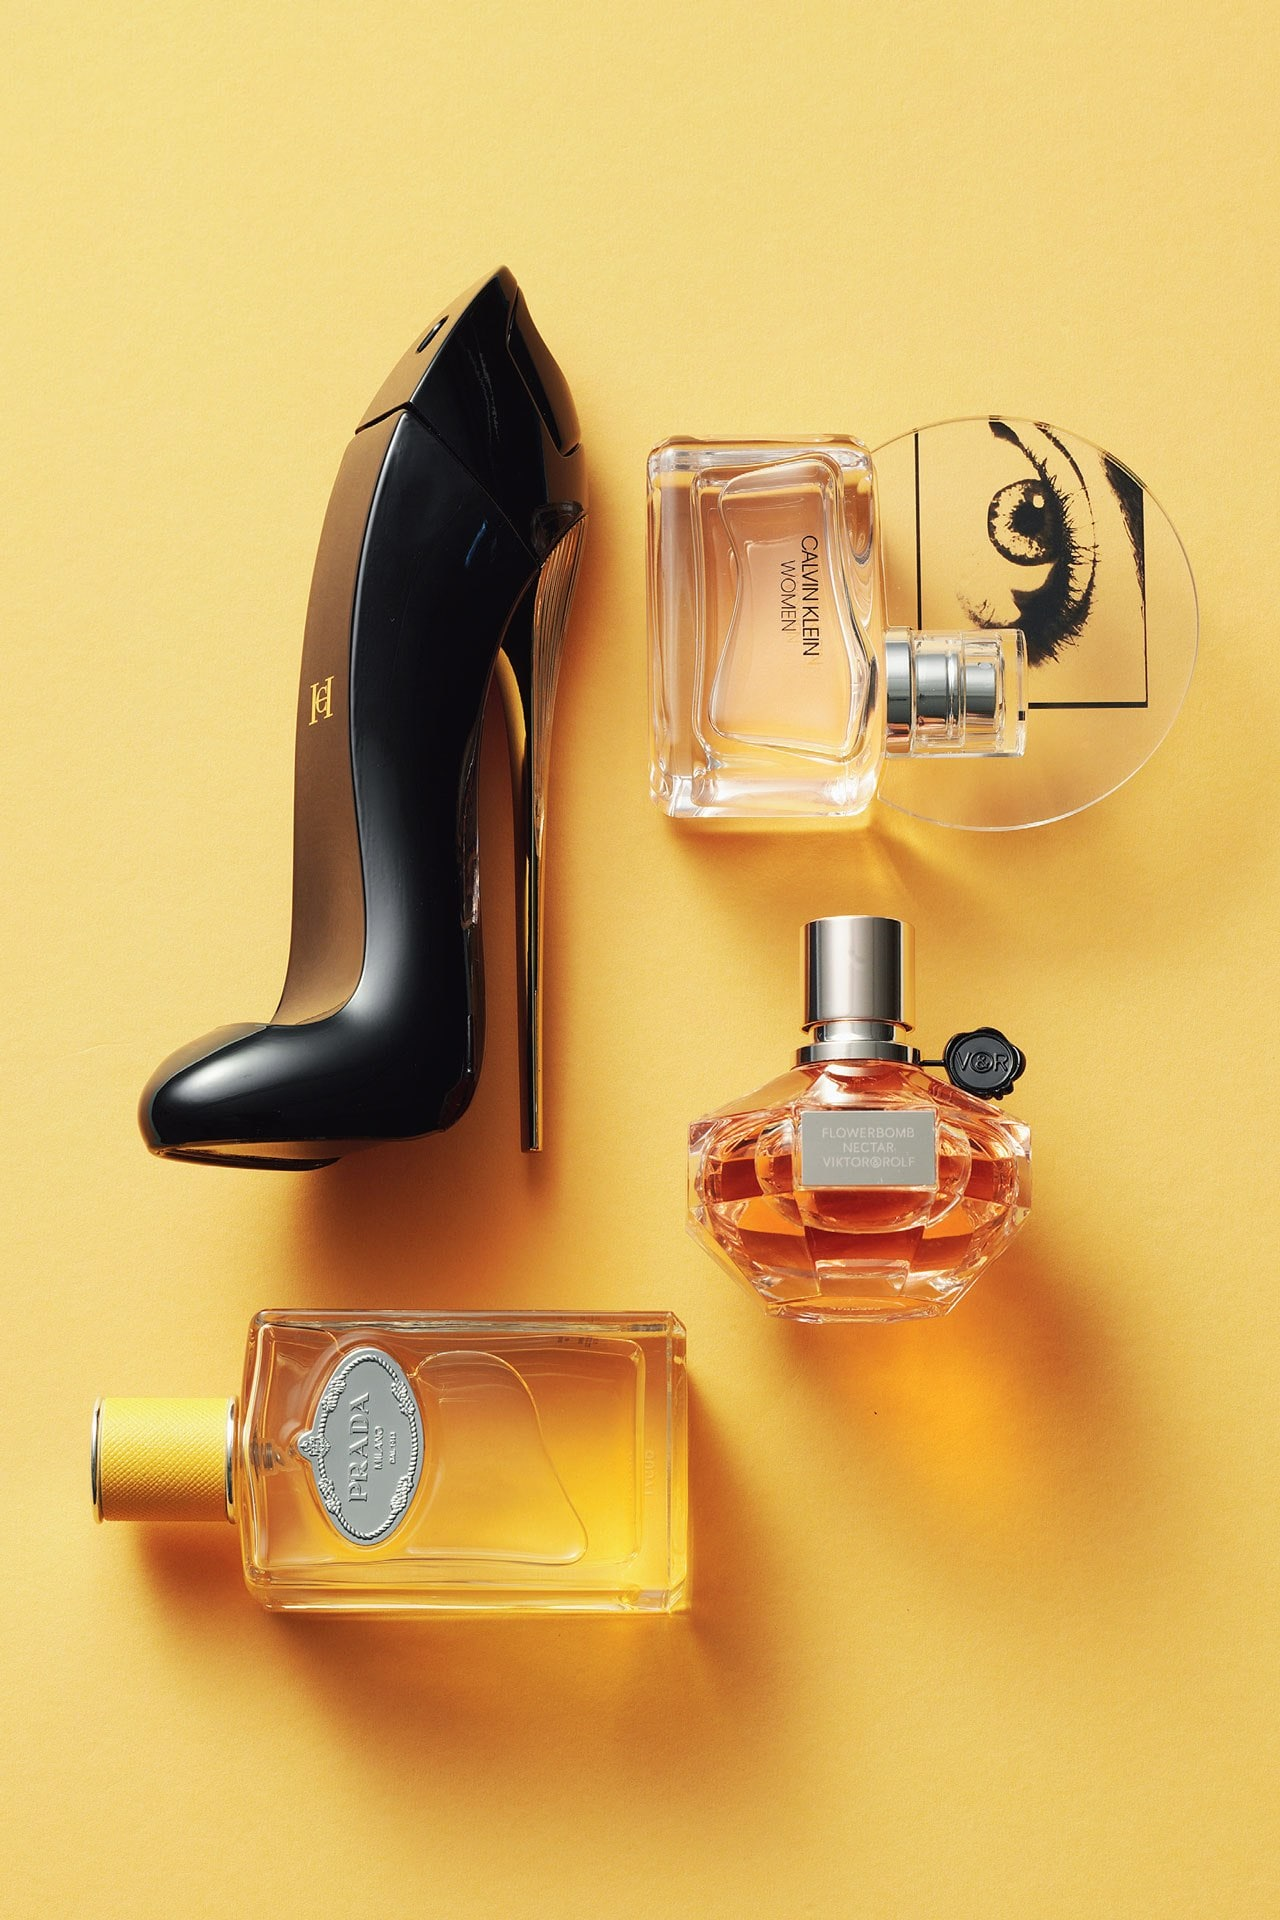 9 designer scents you need in your fragrance wardrobe, stat